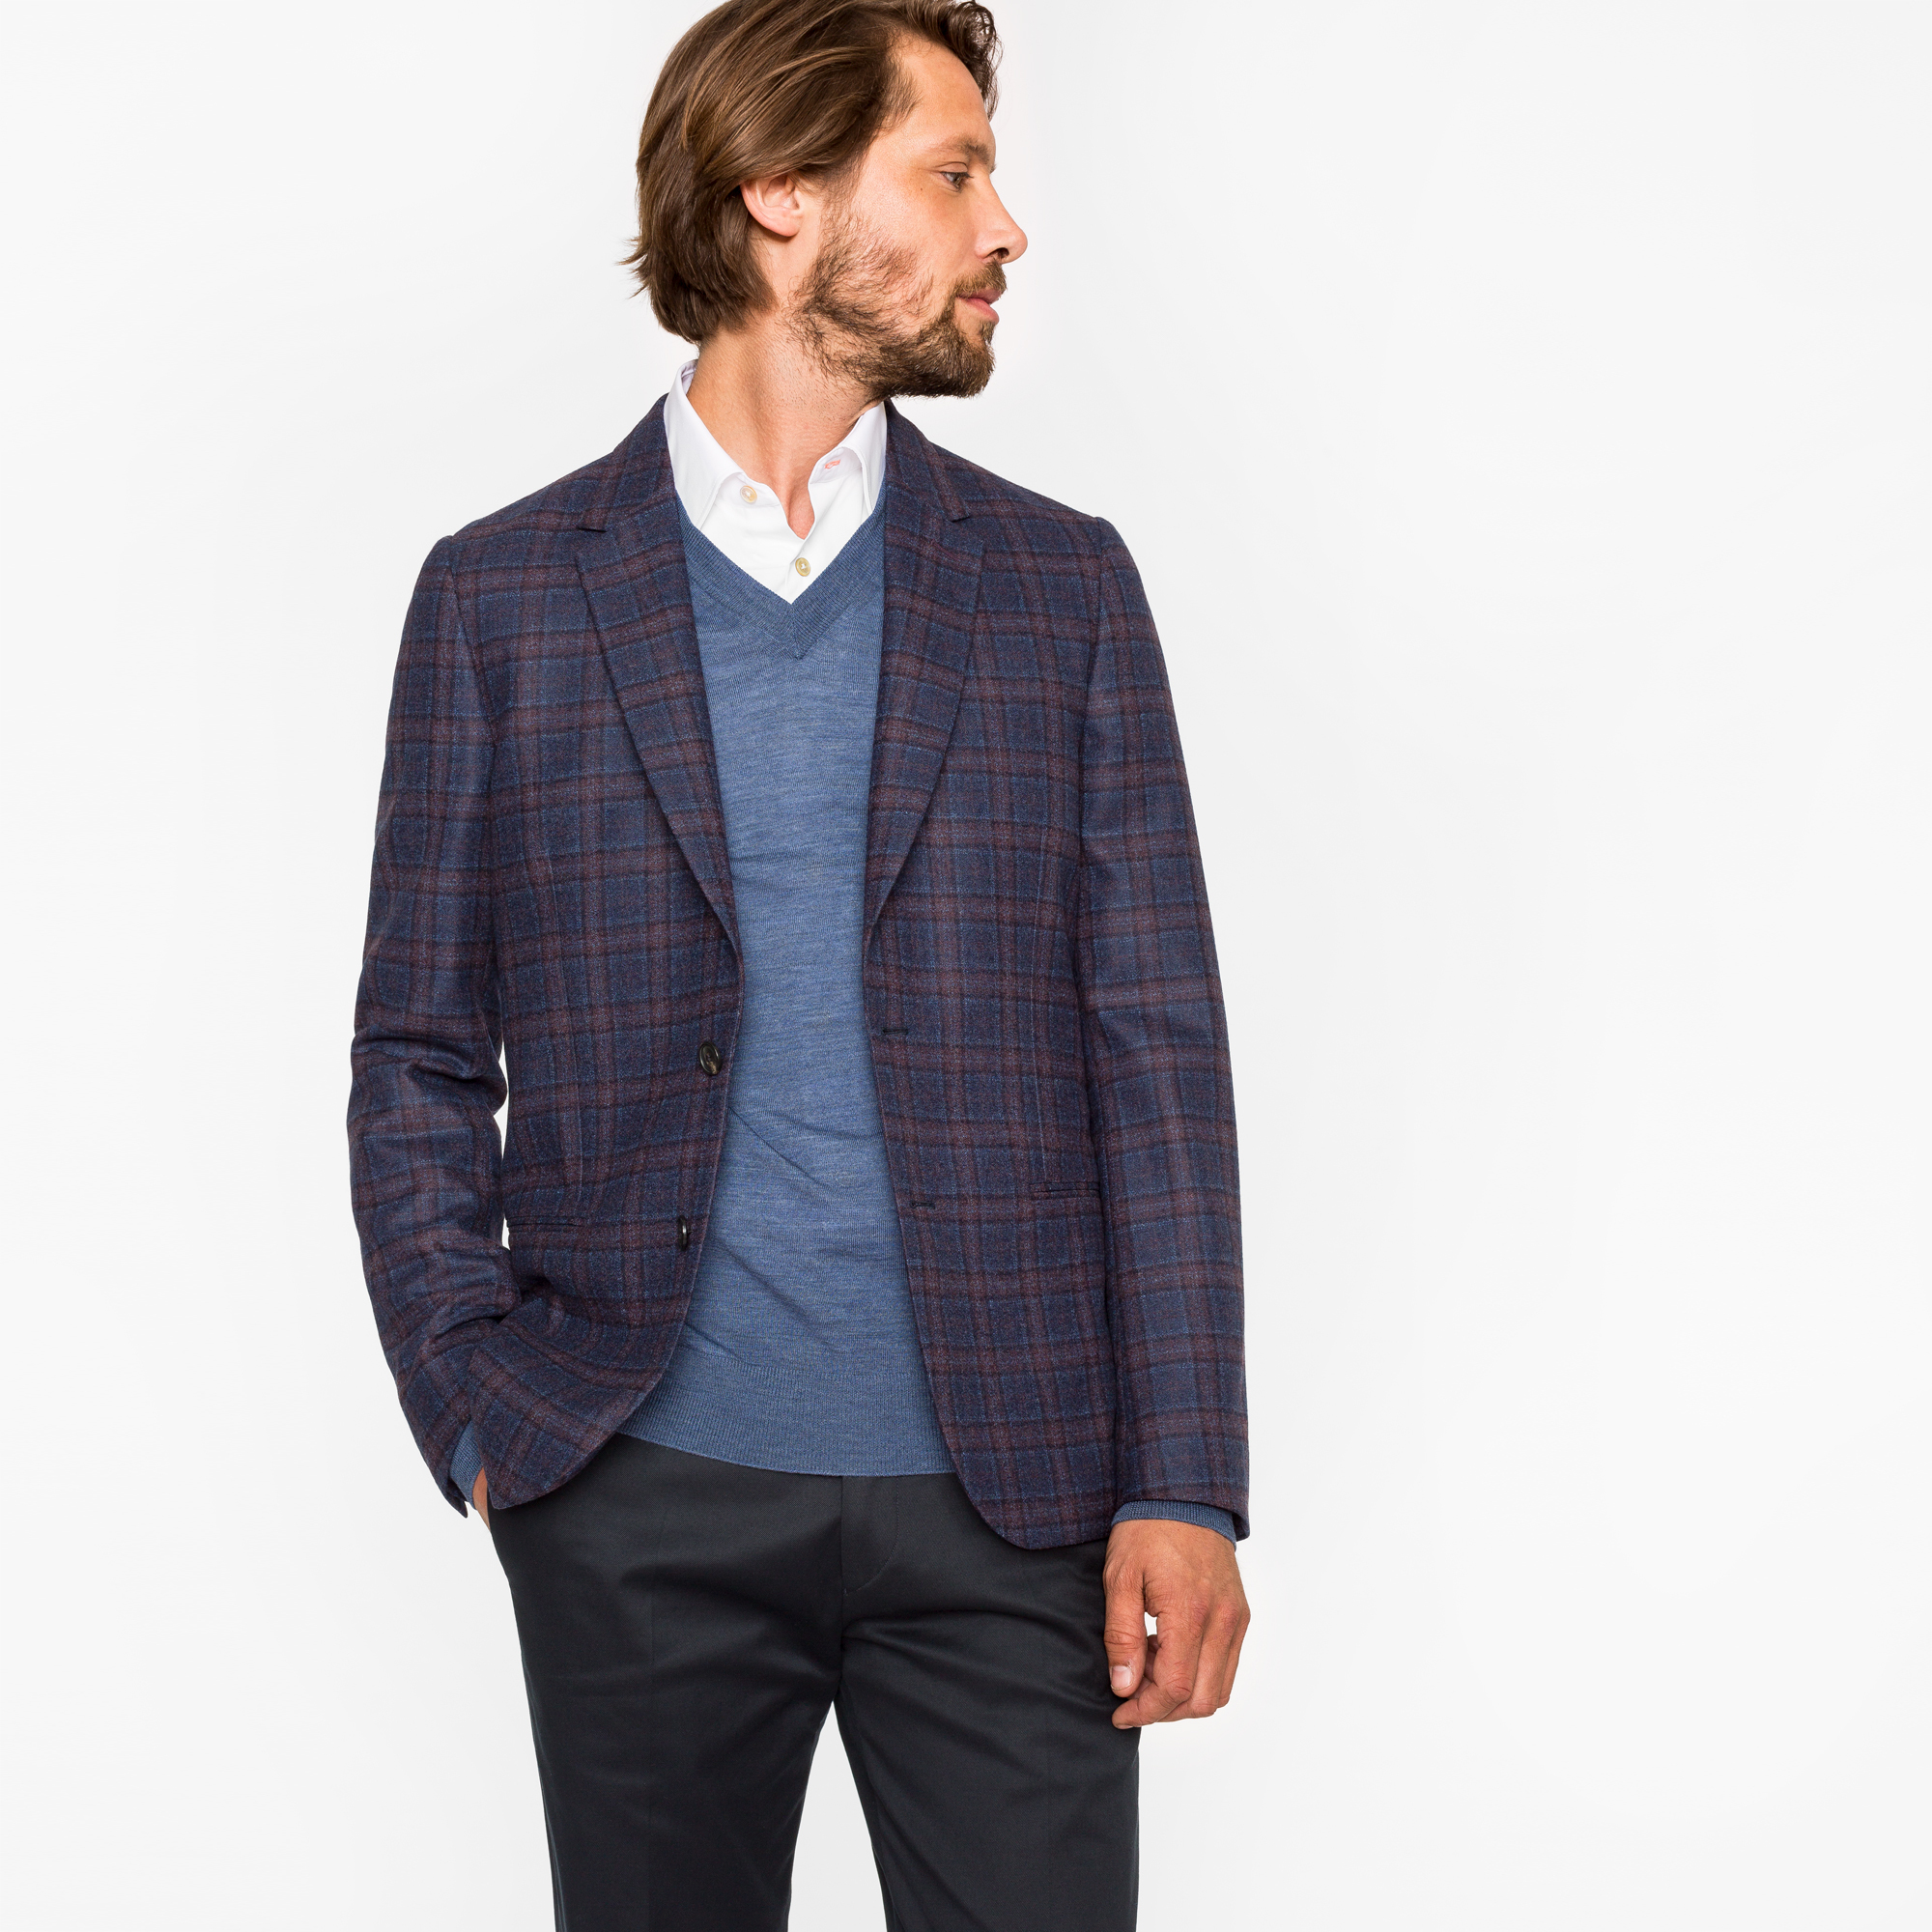 Paul Smith Men's Tailored-Fit Navy And Damson Check Unlined Wool Blazer